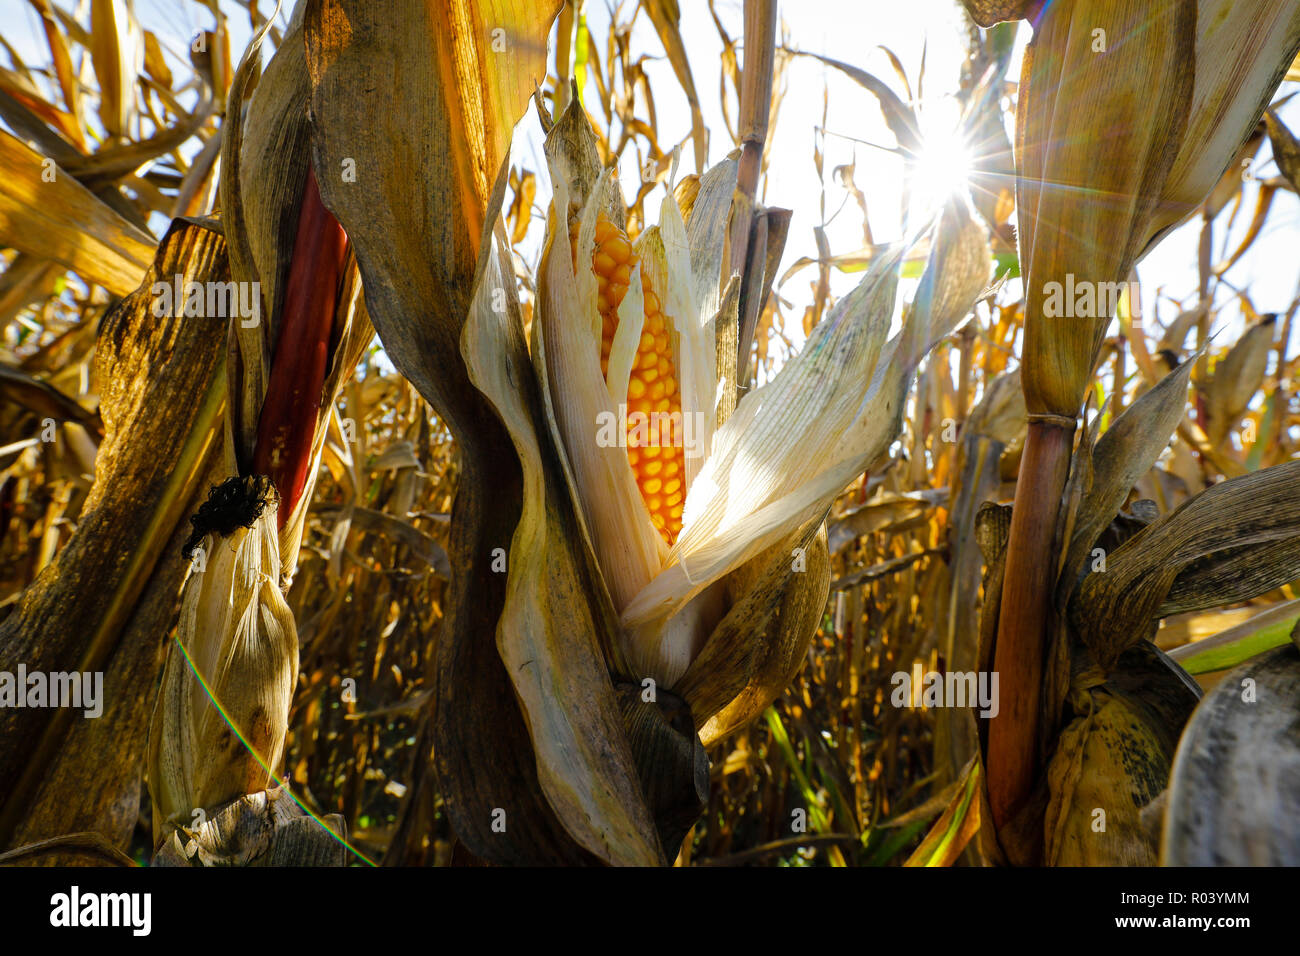 Maize field in hot summer, Germany - Stock Image